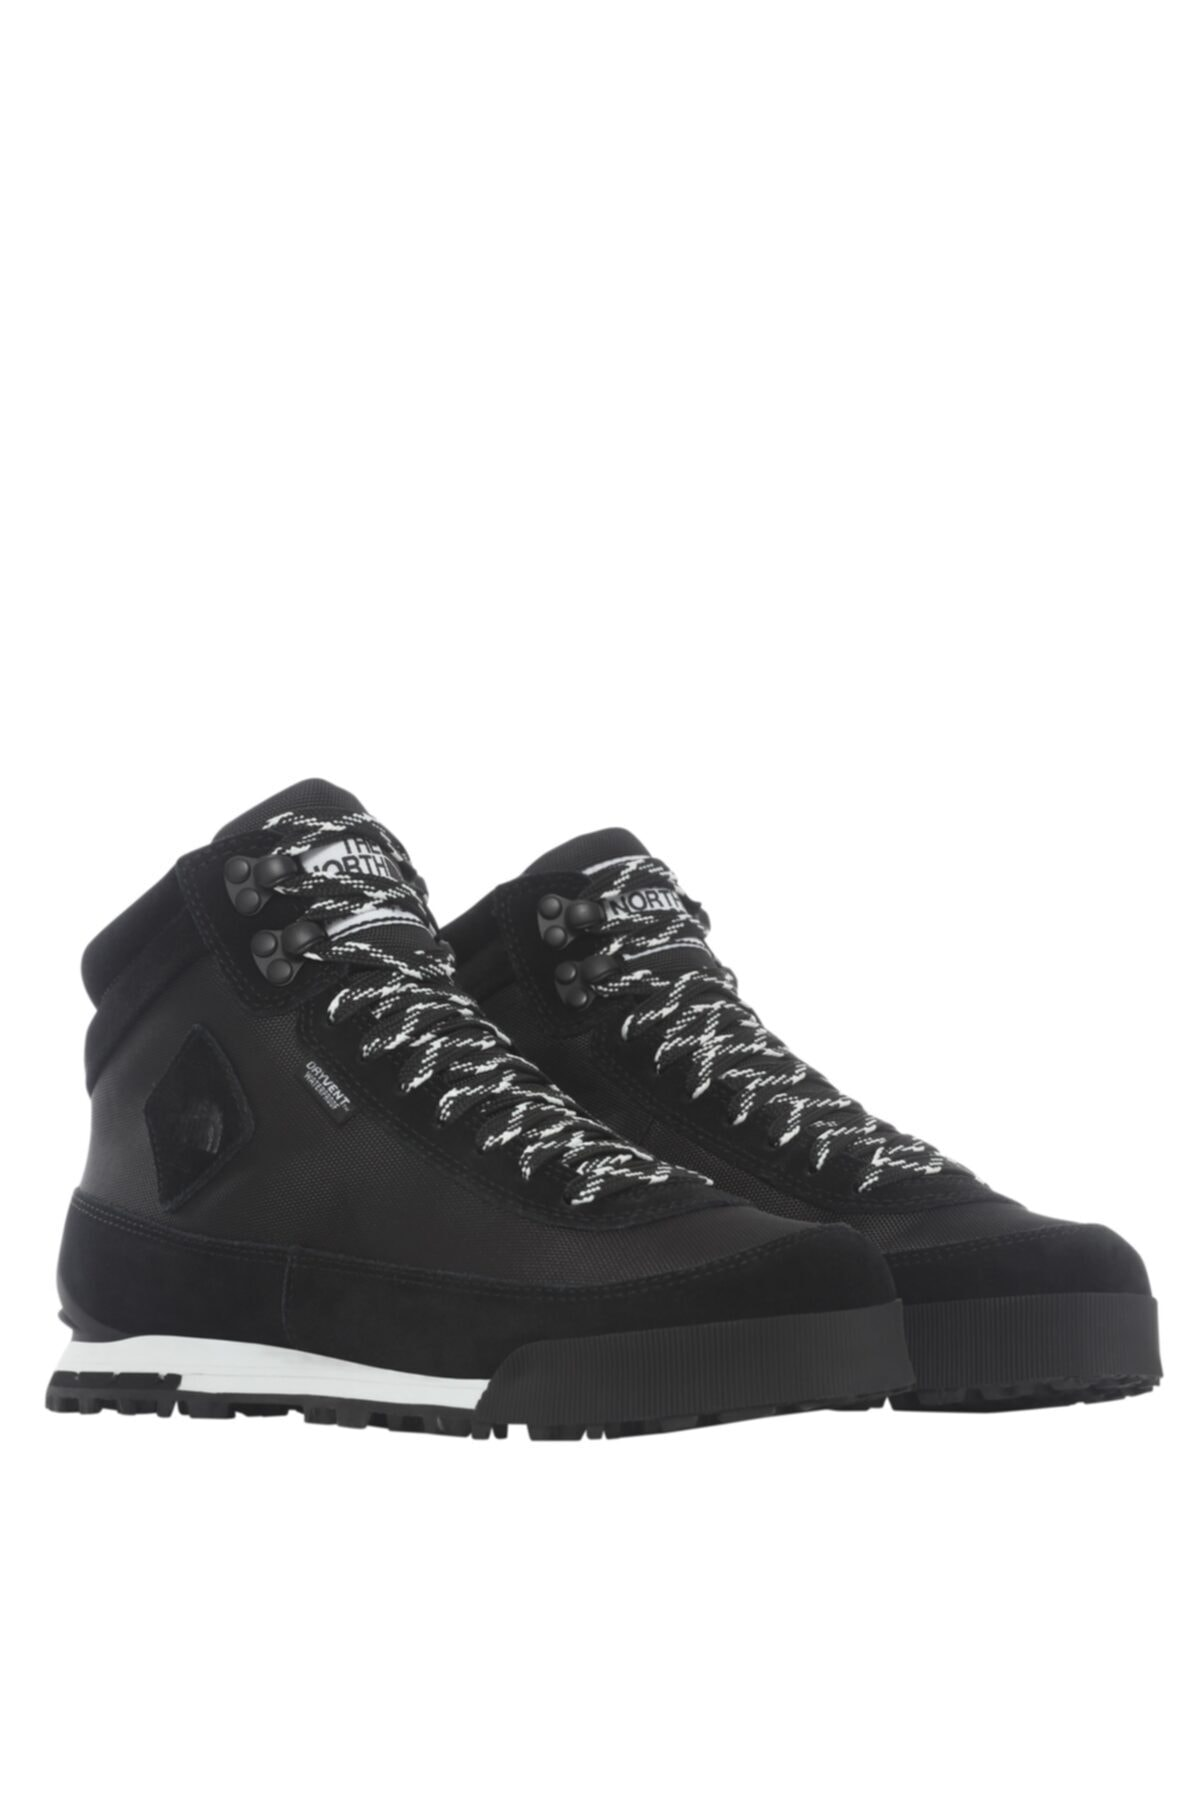 THE NORTH FACE W Back-2-berk Boot 2 Nf00a1mfky41 1